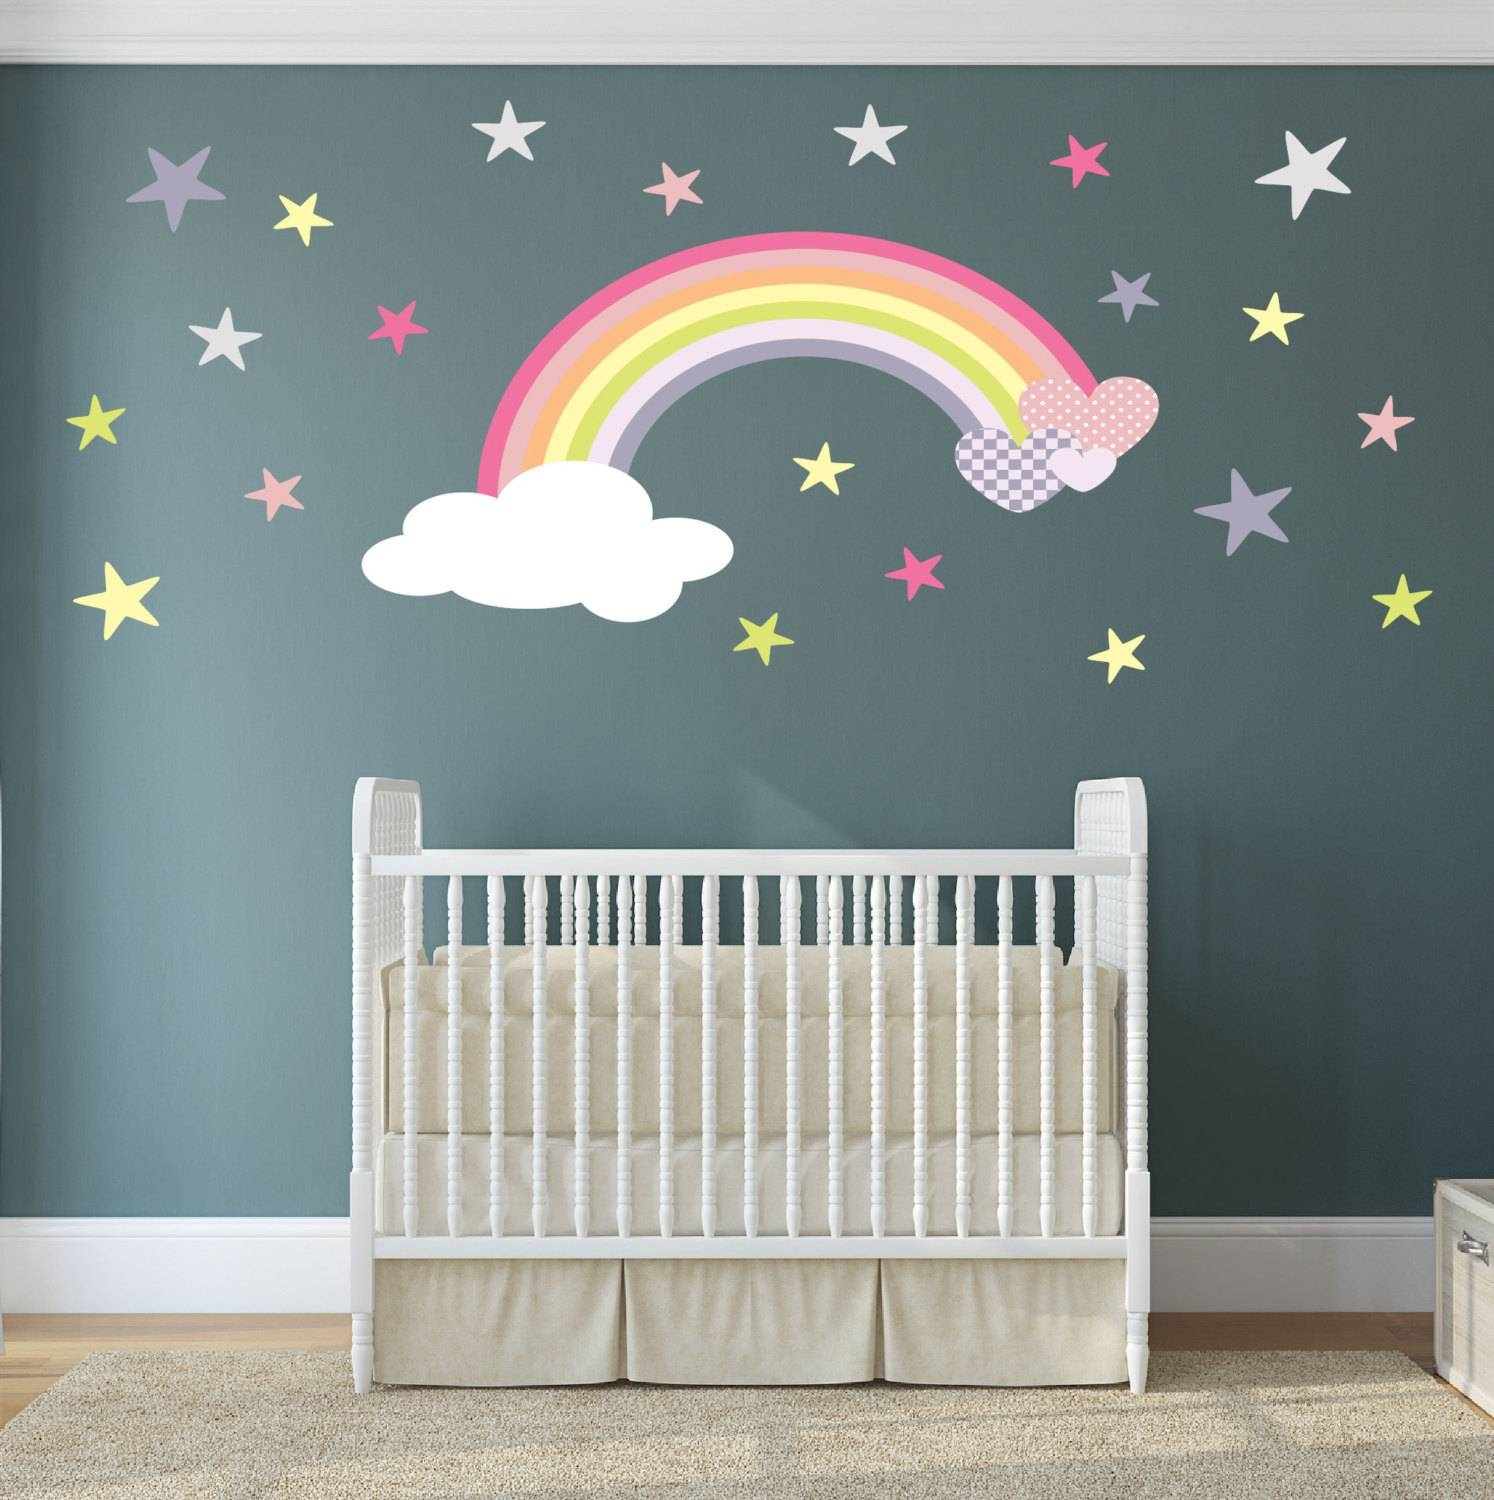 Rainbow Wall Art Nursery Decor. Decal With Magical Hearts And With Most Popular Nursery Wall Art (Gallery 9 of 20)